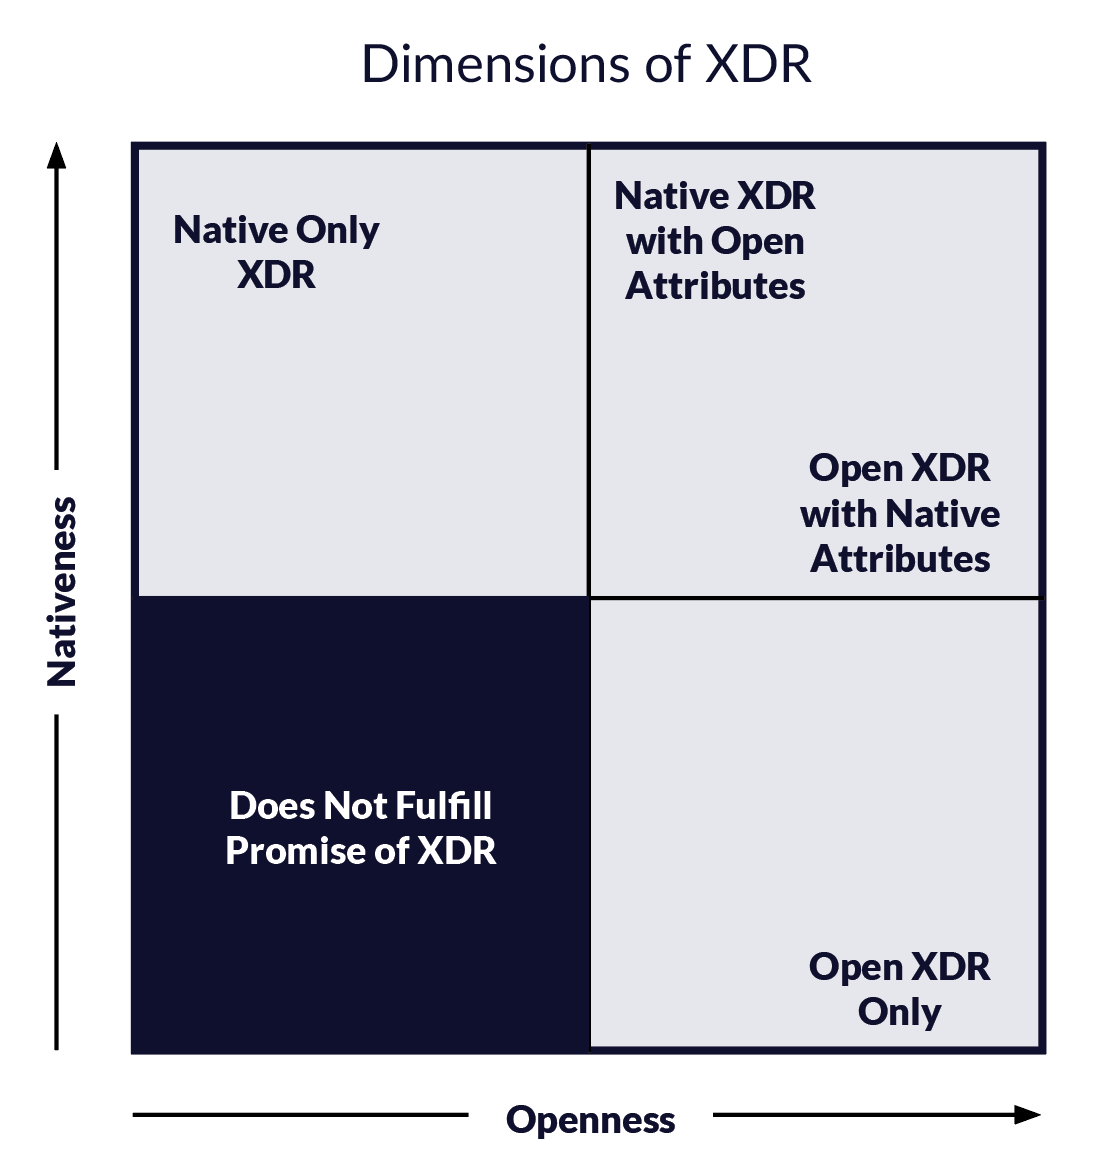 Dimensions of XDR